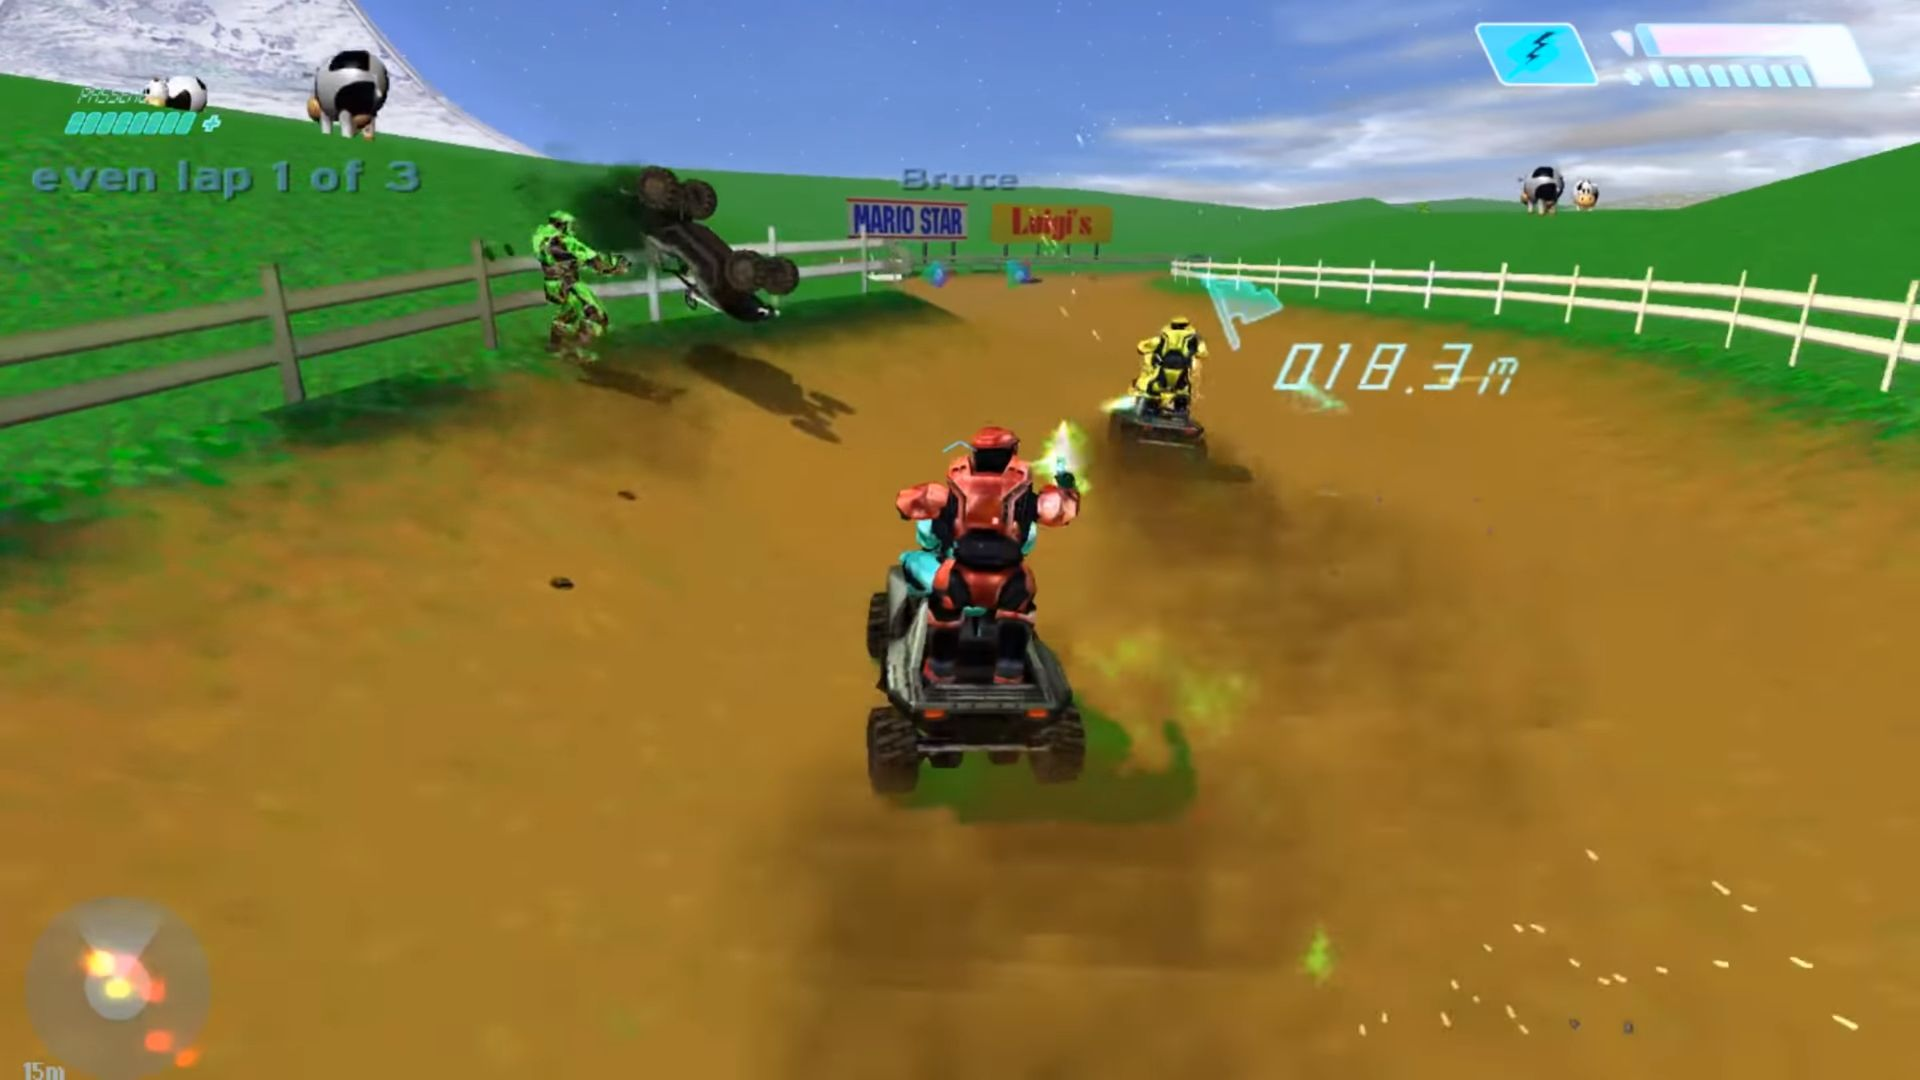 Here's Mario Kart in Halo